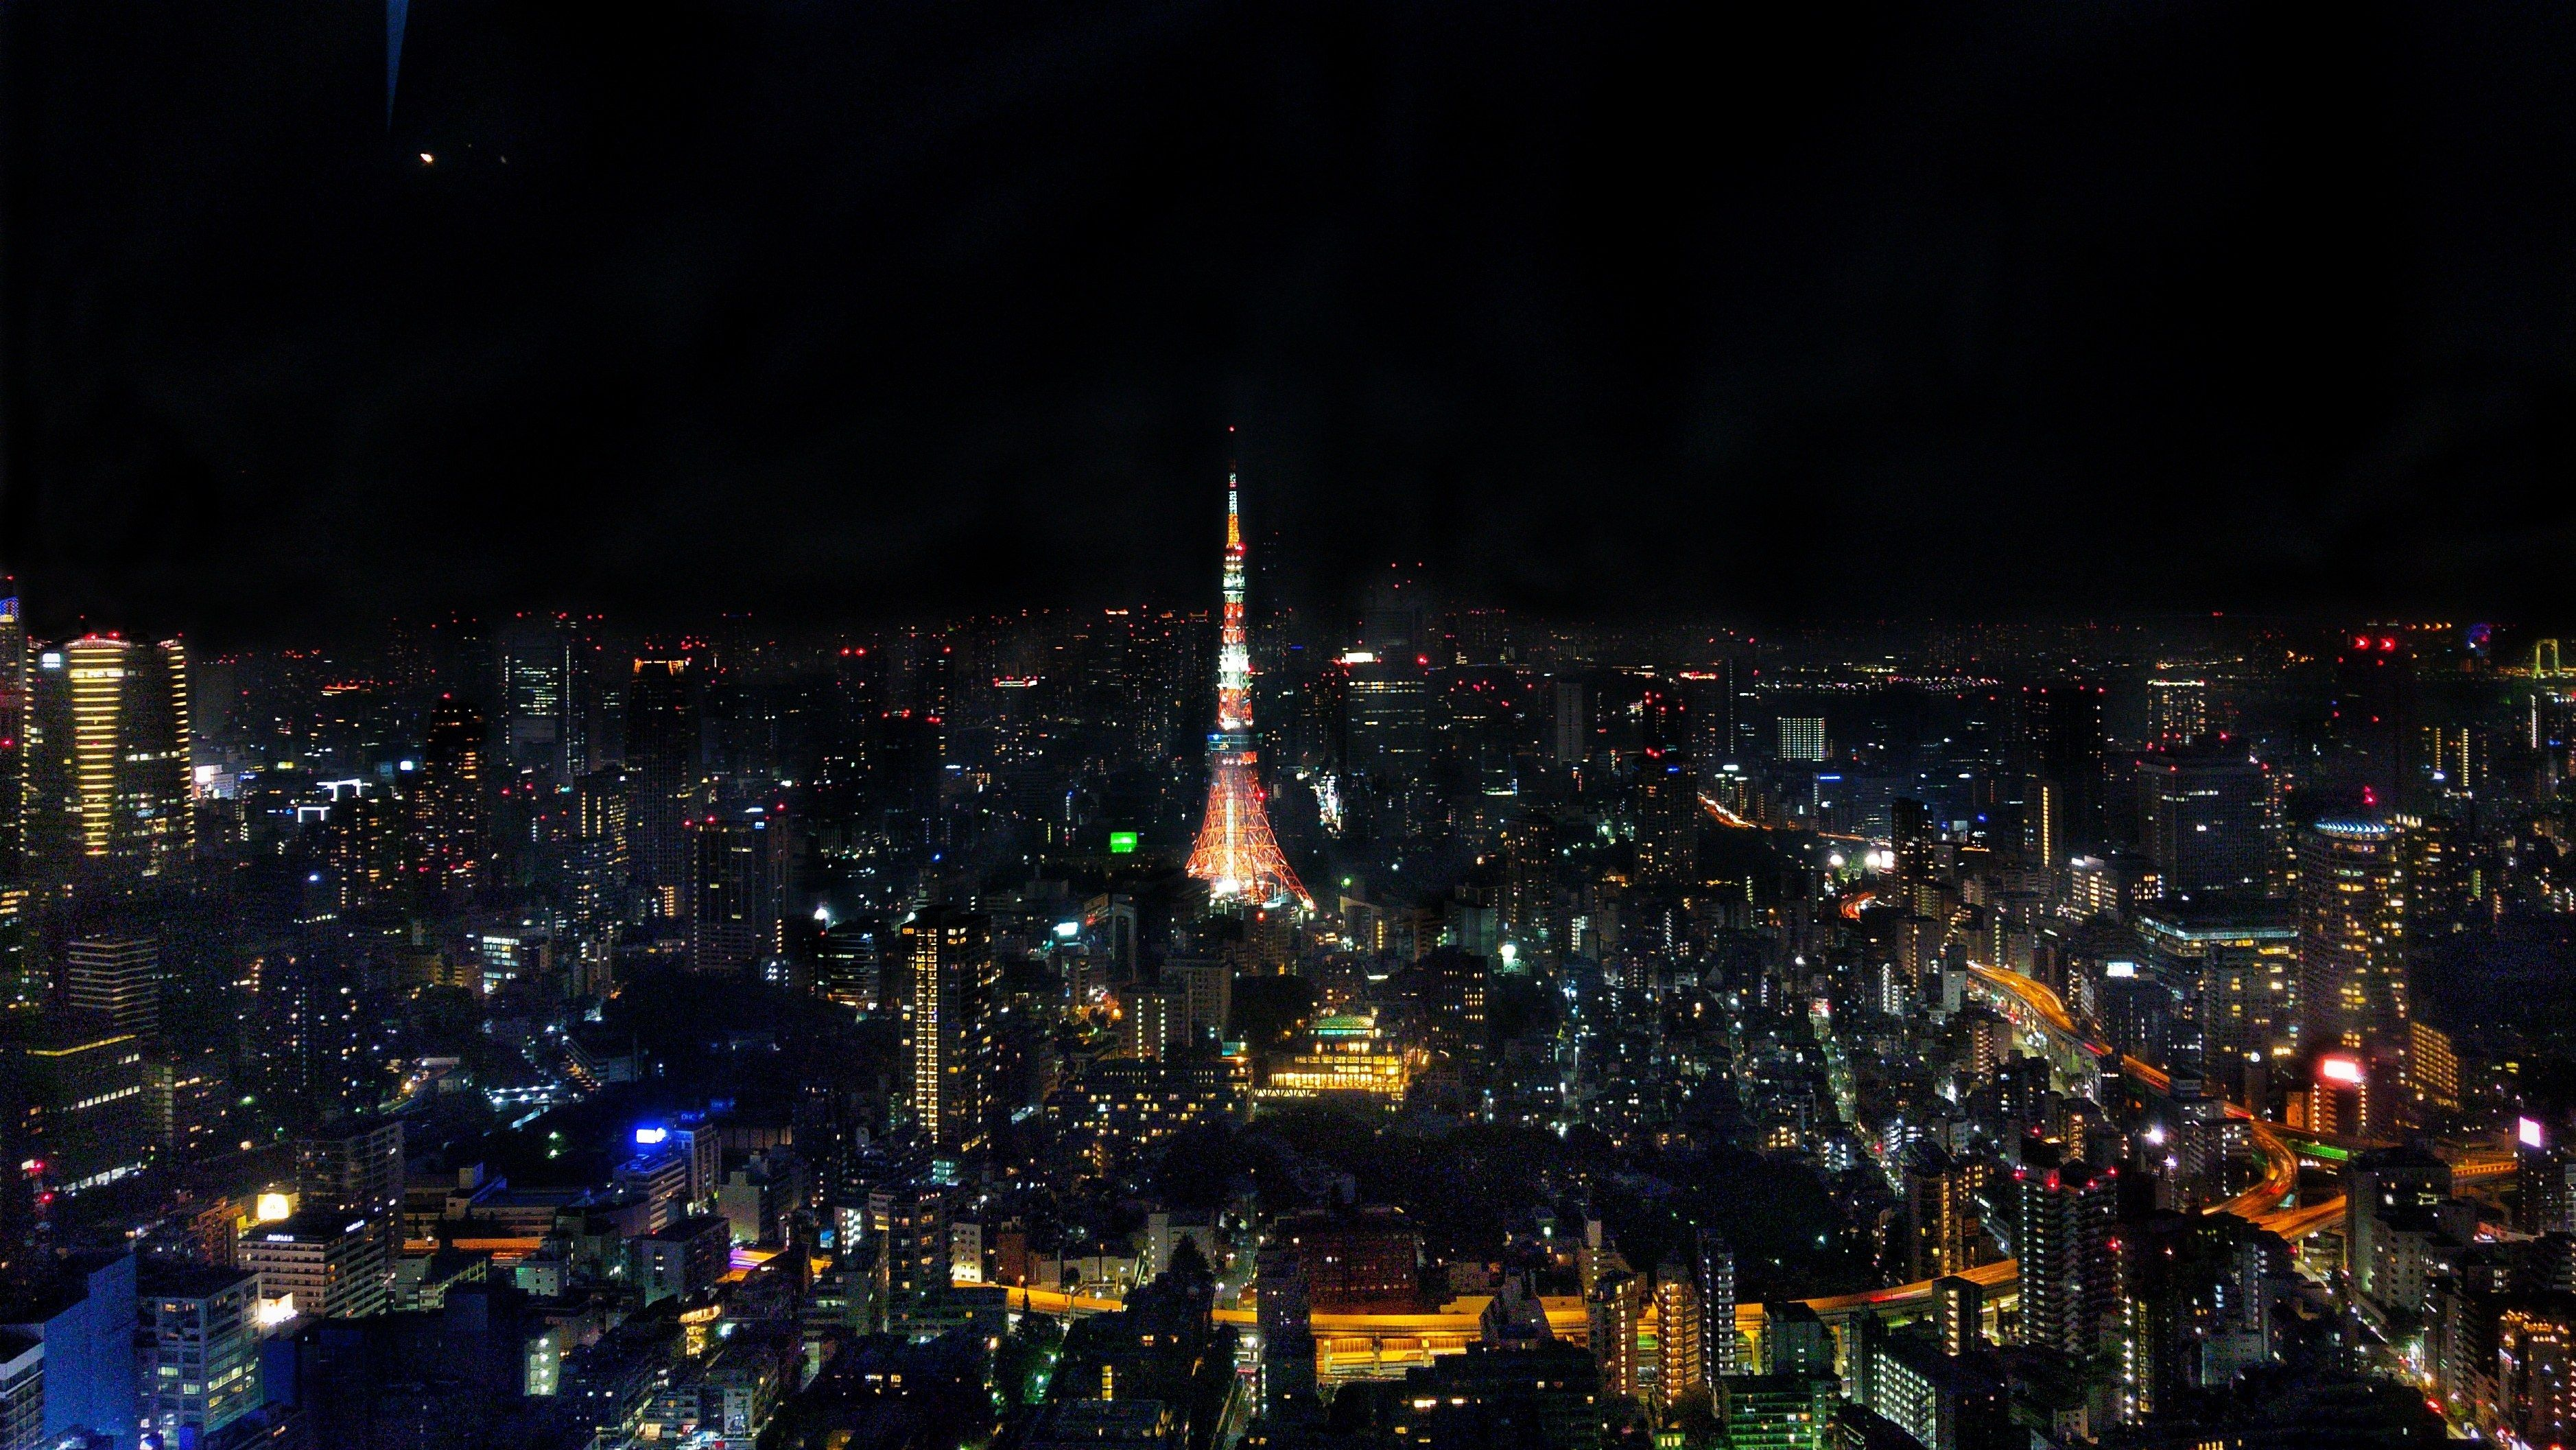 Tokyo tower at night (RAW)-01-01_001.jpg